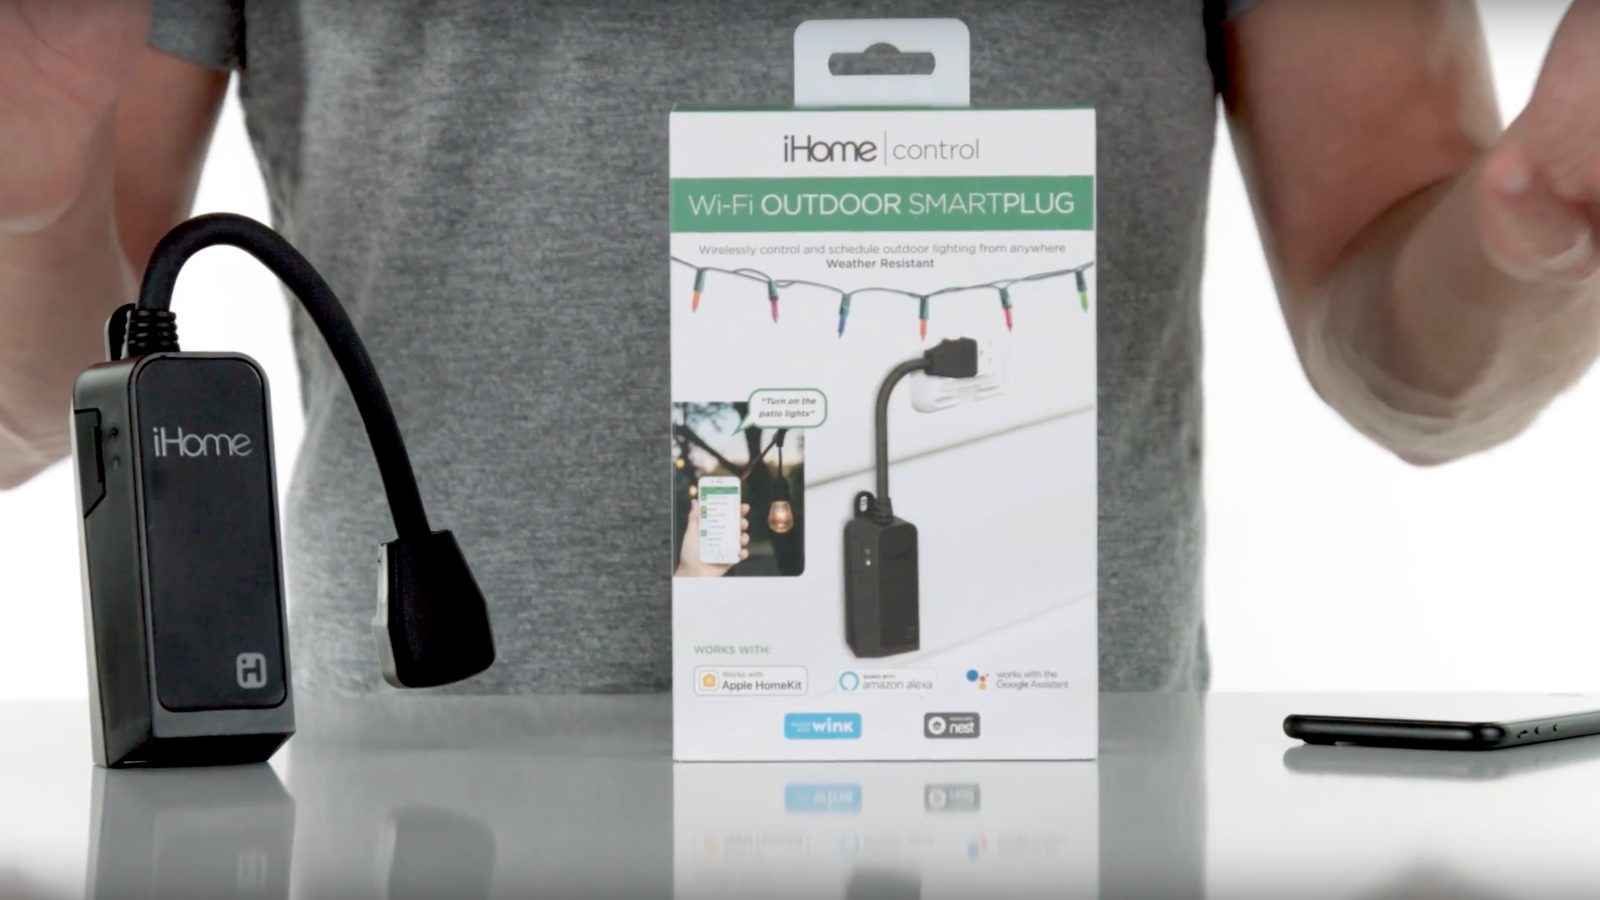 iHome launches affordable HomeKit-enabled Outdoor SmartPlug just in